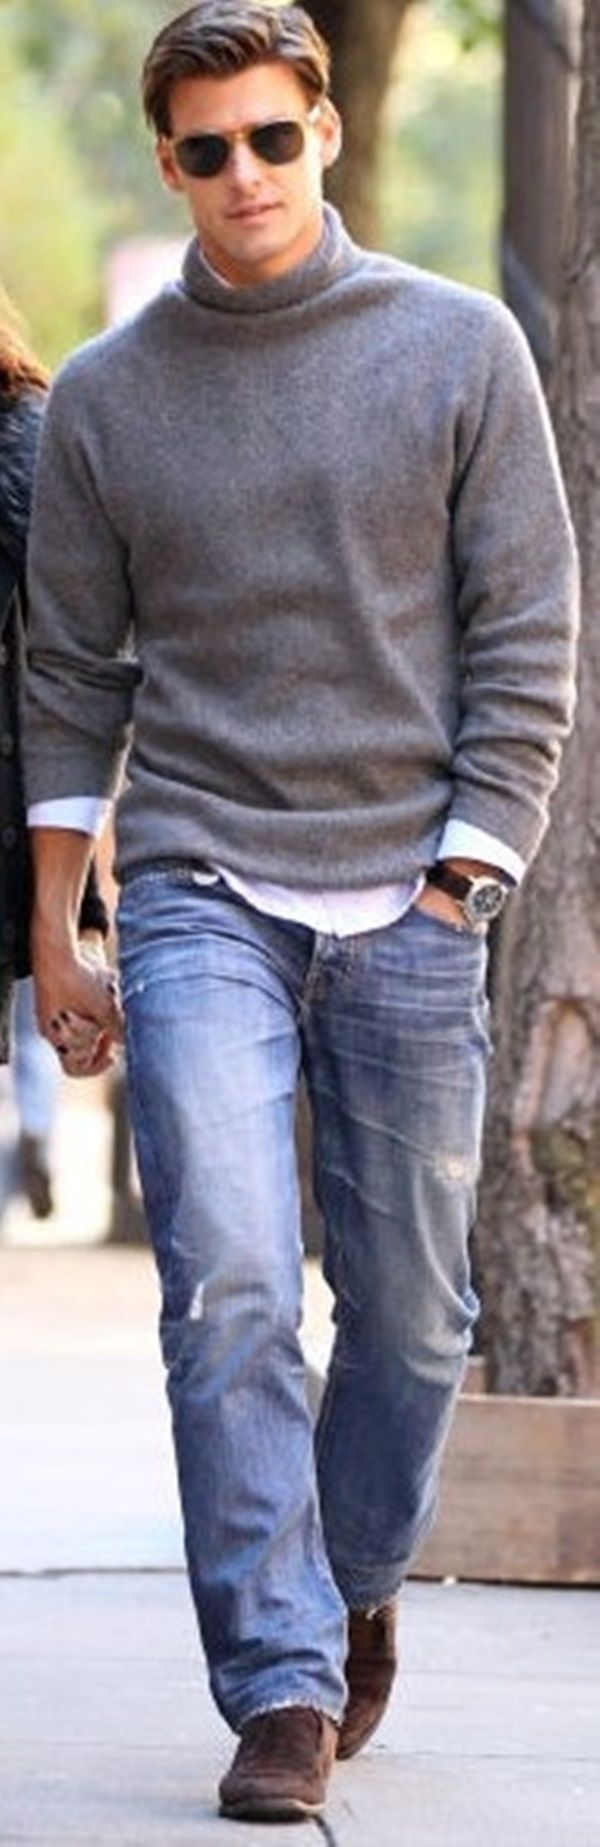 Men's Street Style Outfits For Cool Guys (6)